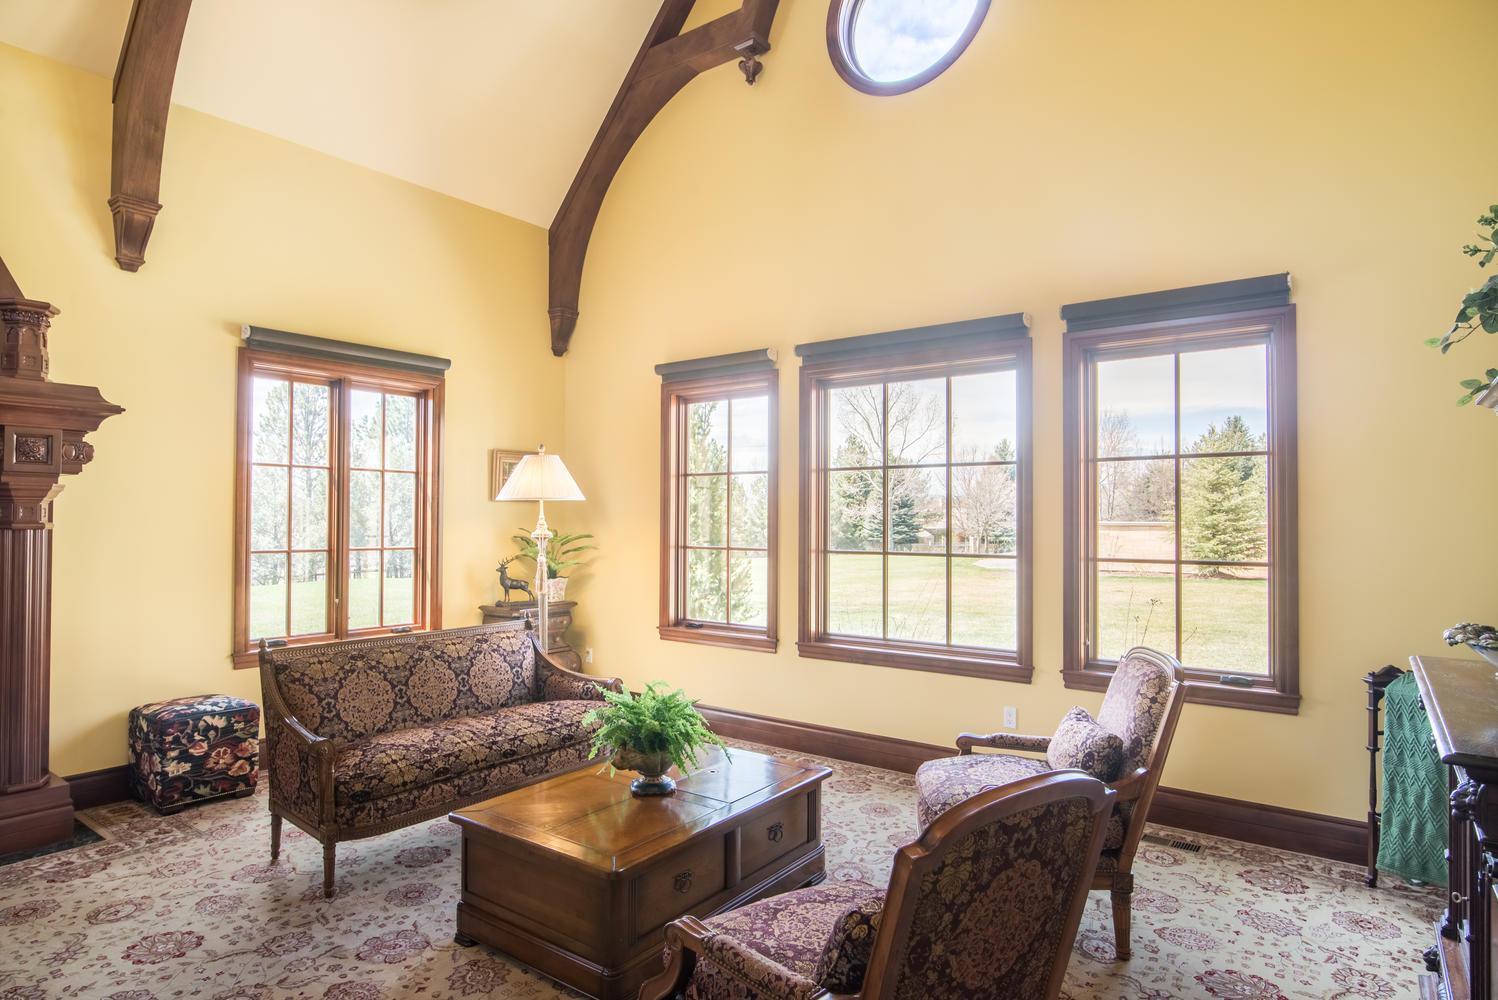 Additional photo for property listing at English manor style home nestled on 2.5 serene acres 1 Tenaya Ln Cherry Hills Village, Colorado 80113 United States